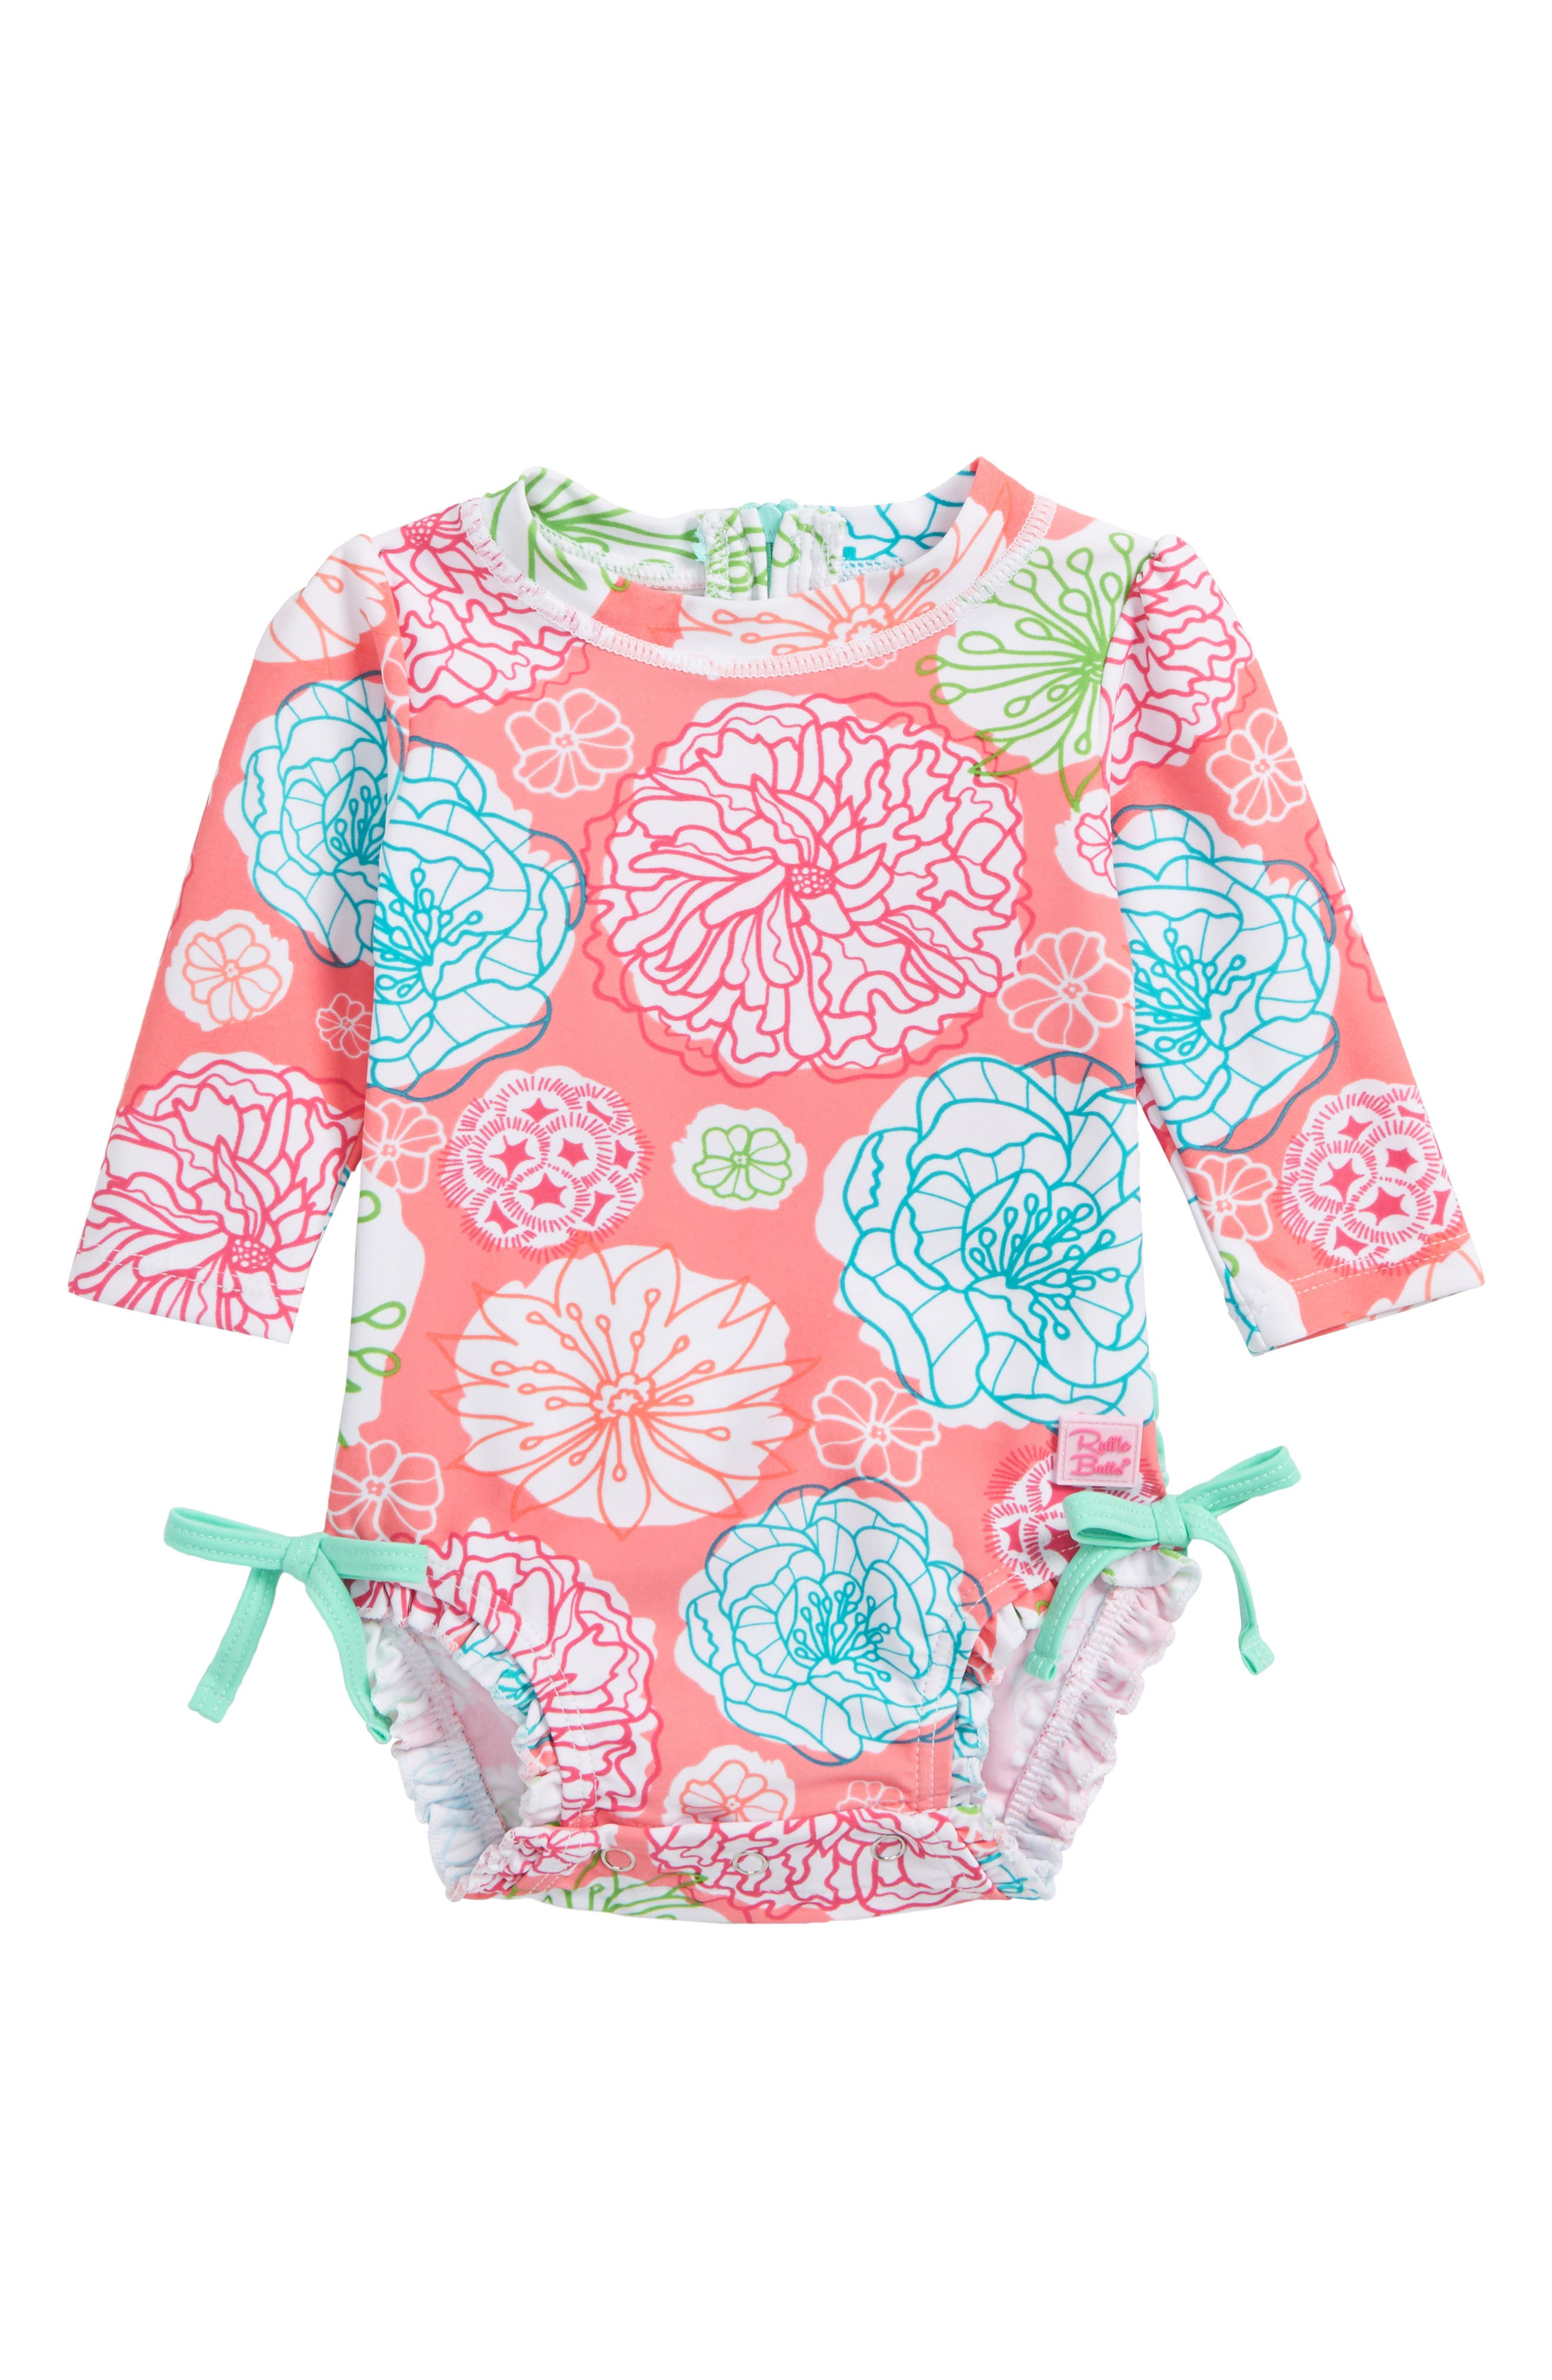 Tropical Garden One-Piece Rashguard,                         Main,                         color, 650